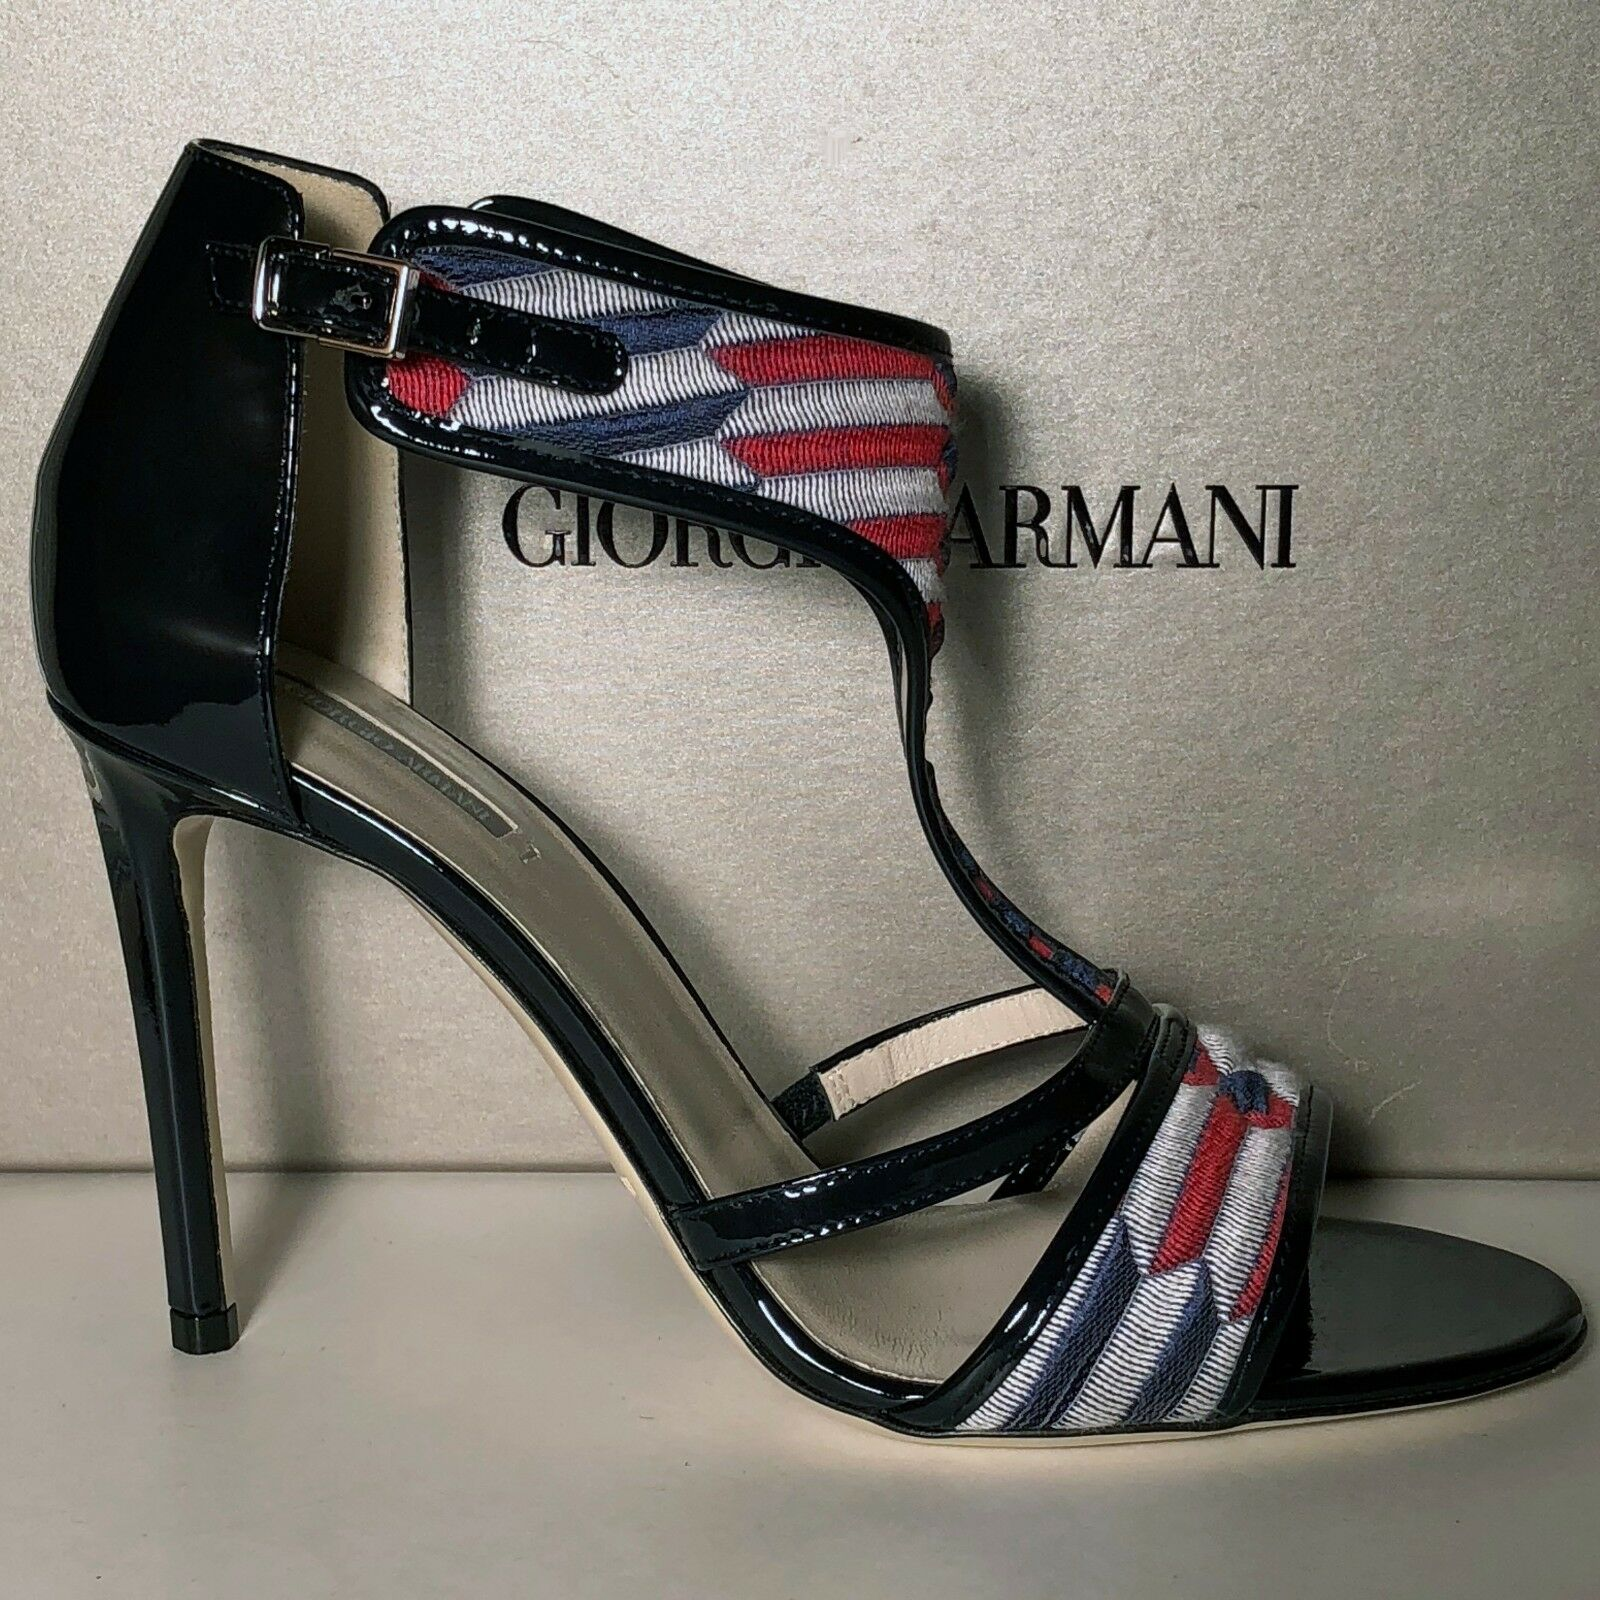 925 Giorgio Armani Women's Black Red Leather Fashion Ankle T-Strap Heels Pumps